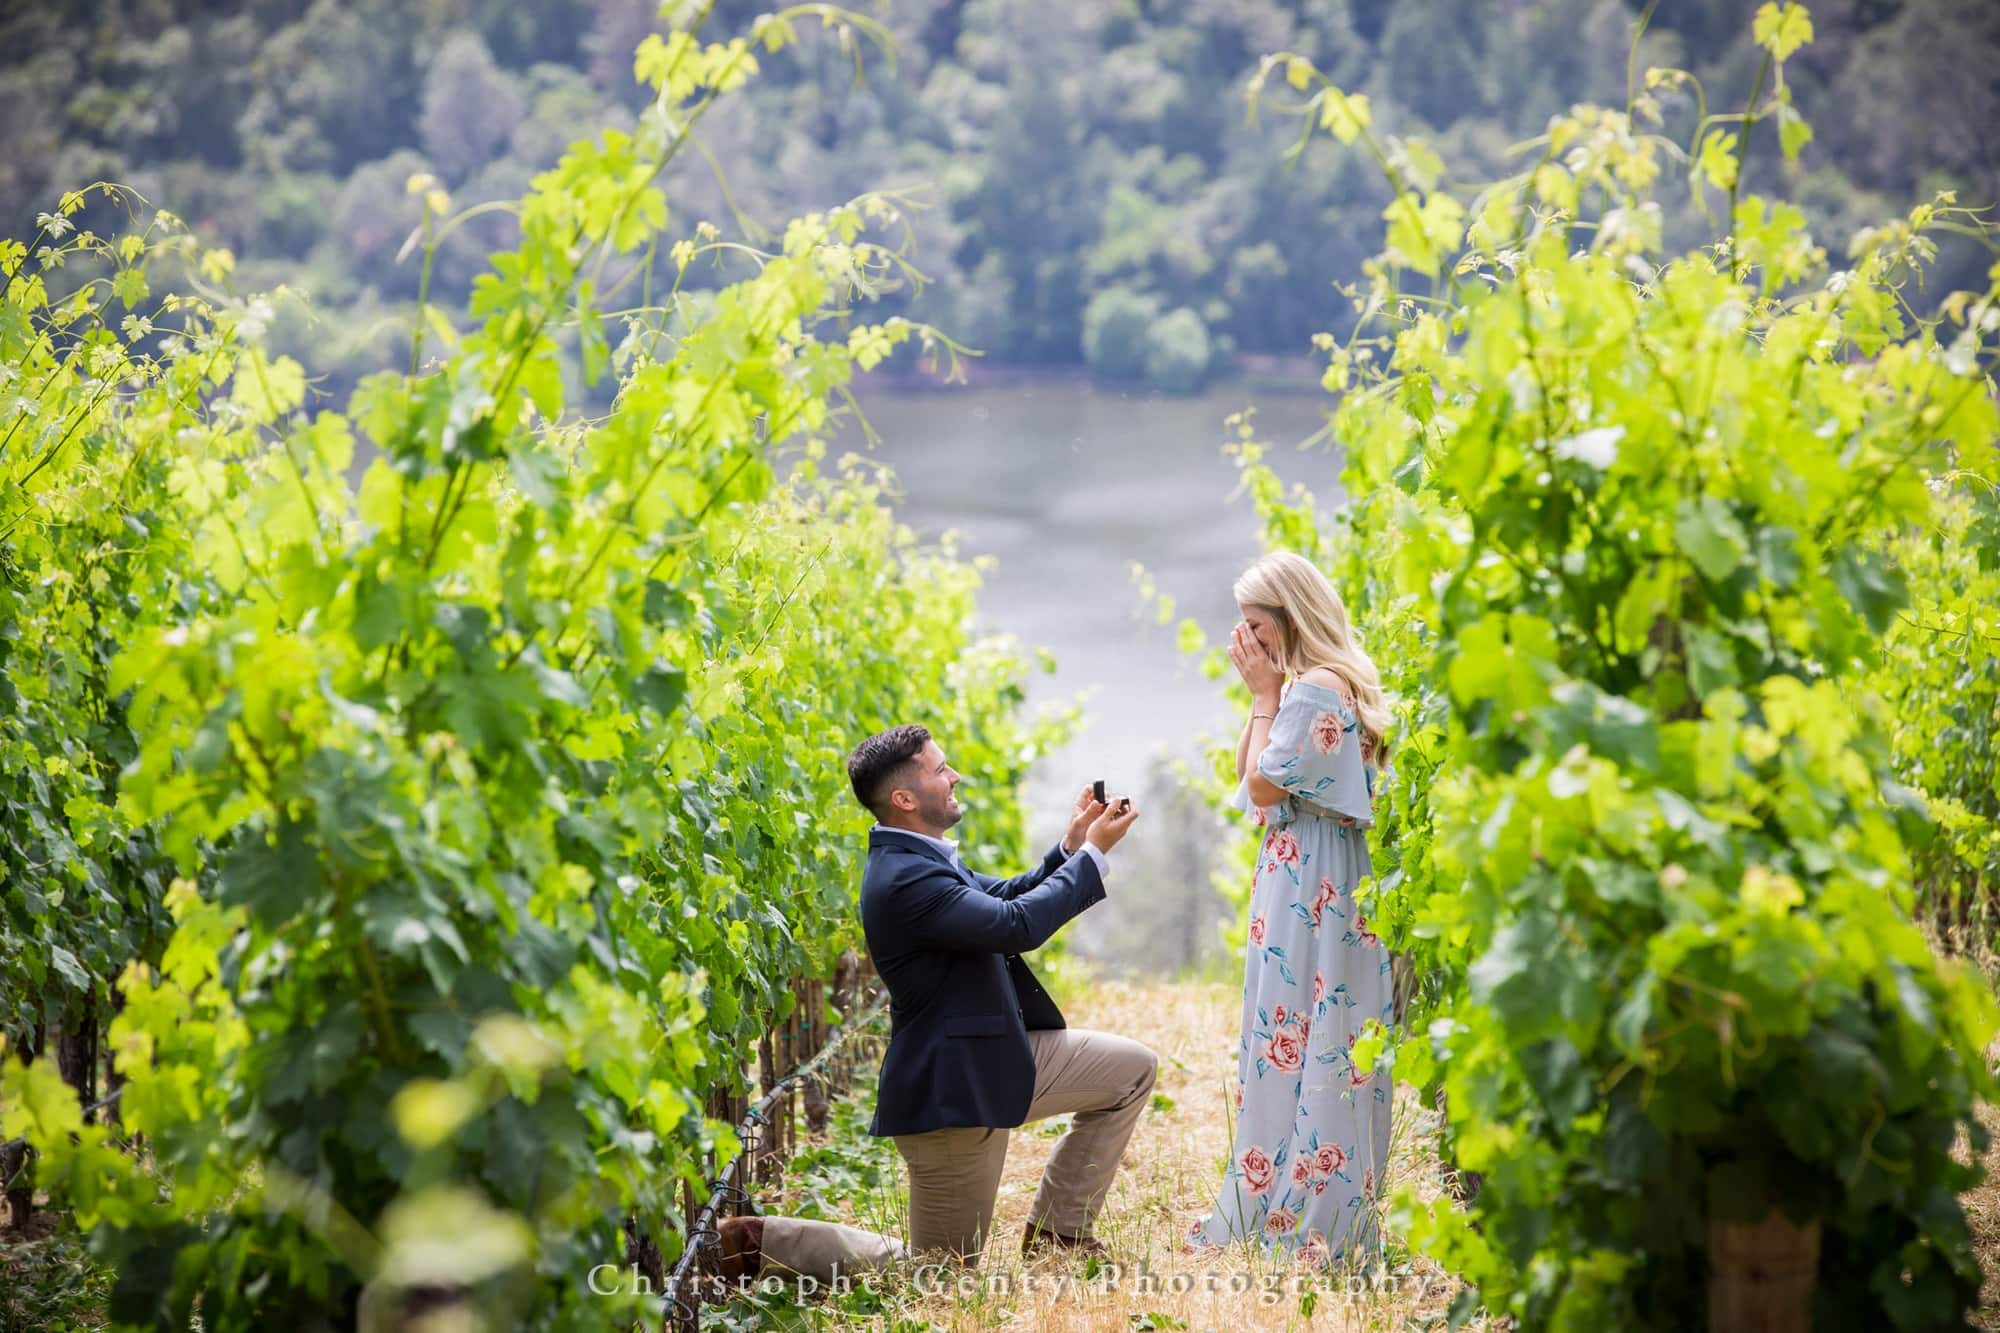 Marriage Proposal Photography in Napa -1011